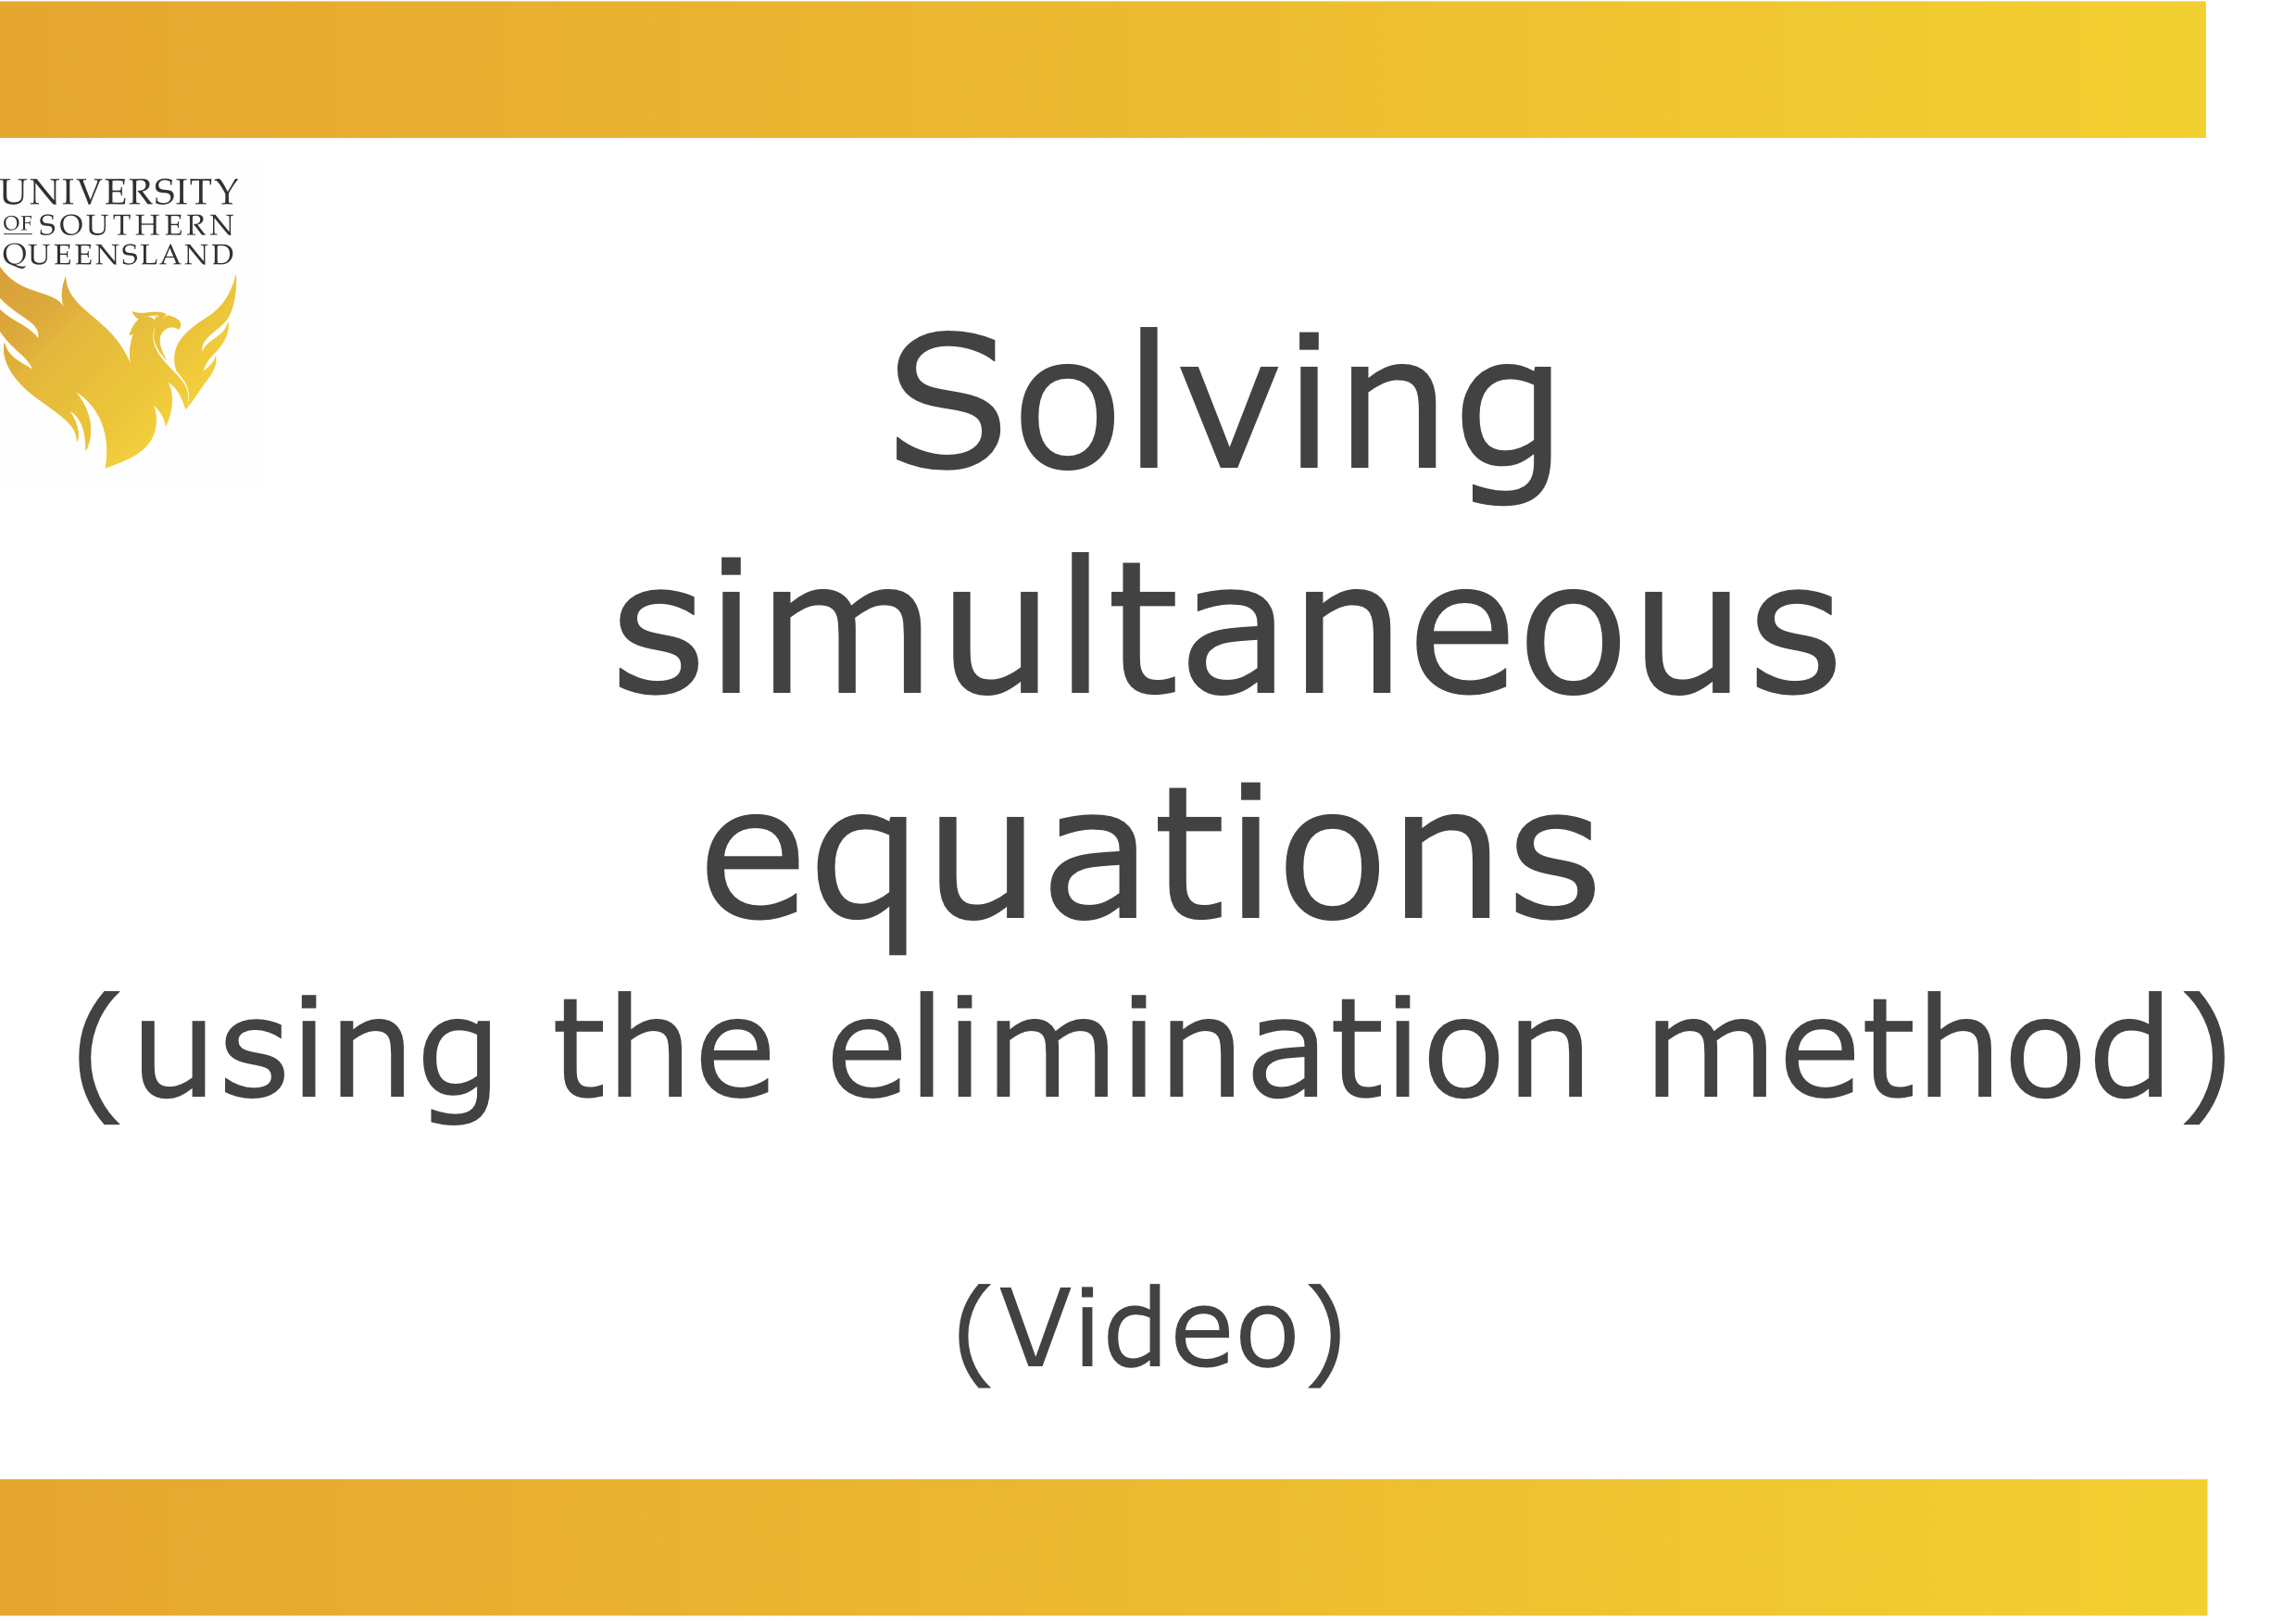 Solving simultaneous equations (using the elimination method)